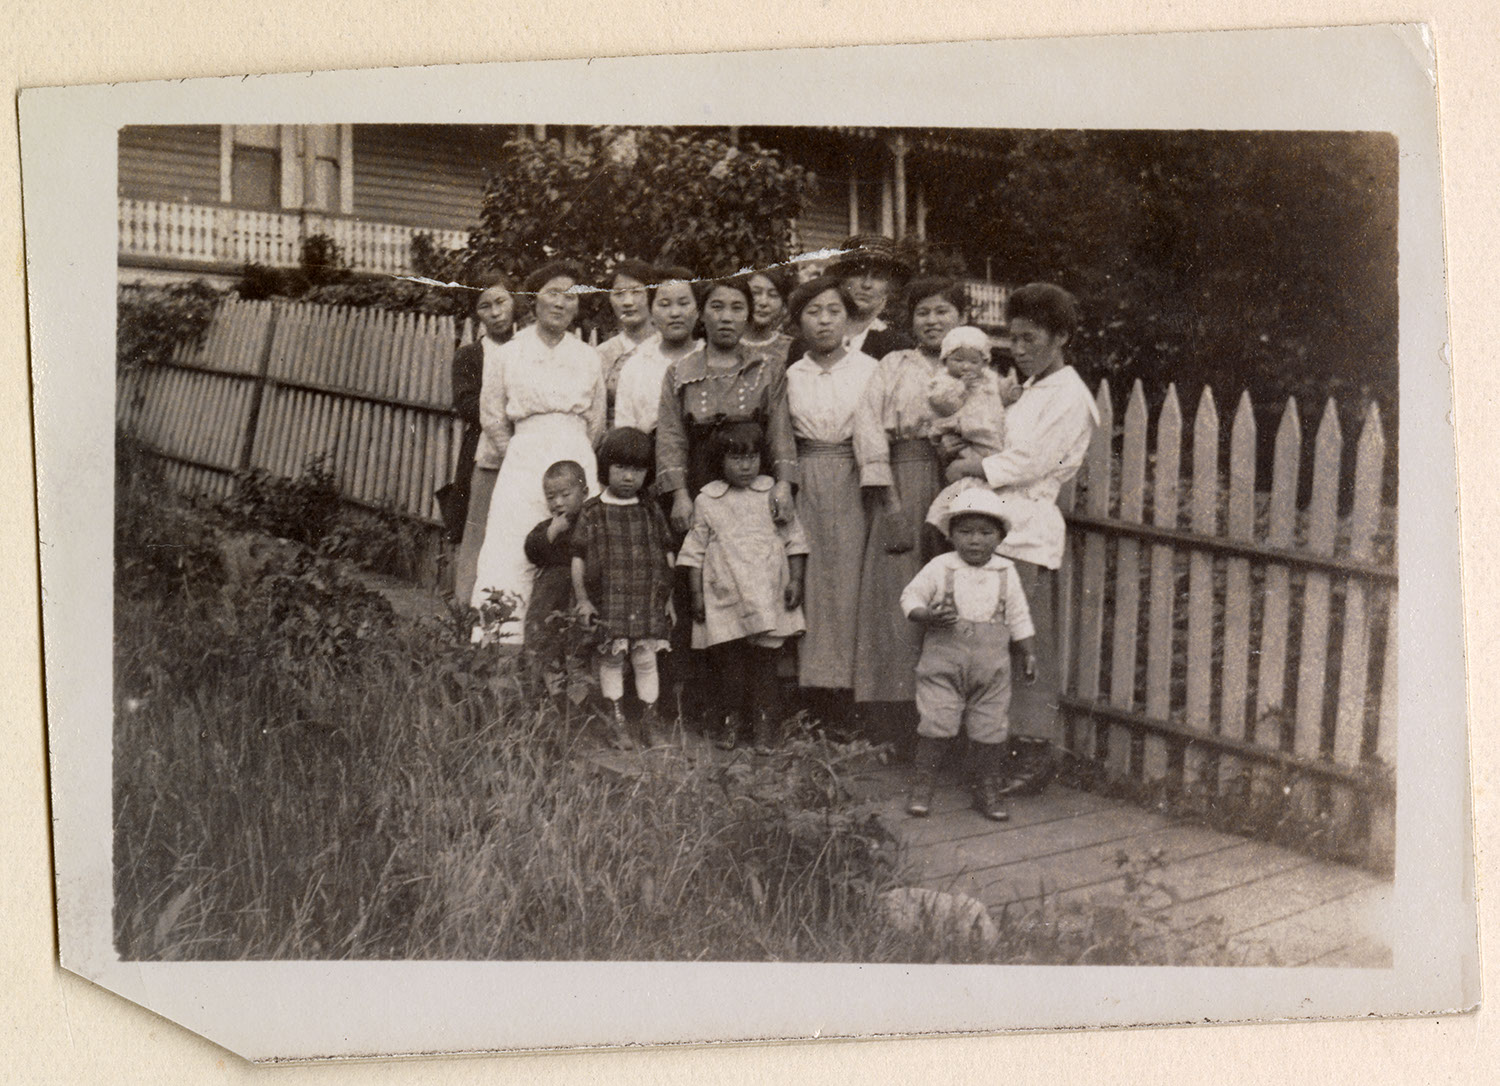 Women and children by a fence